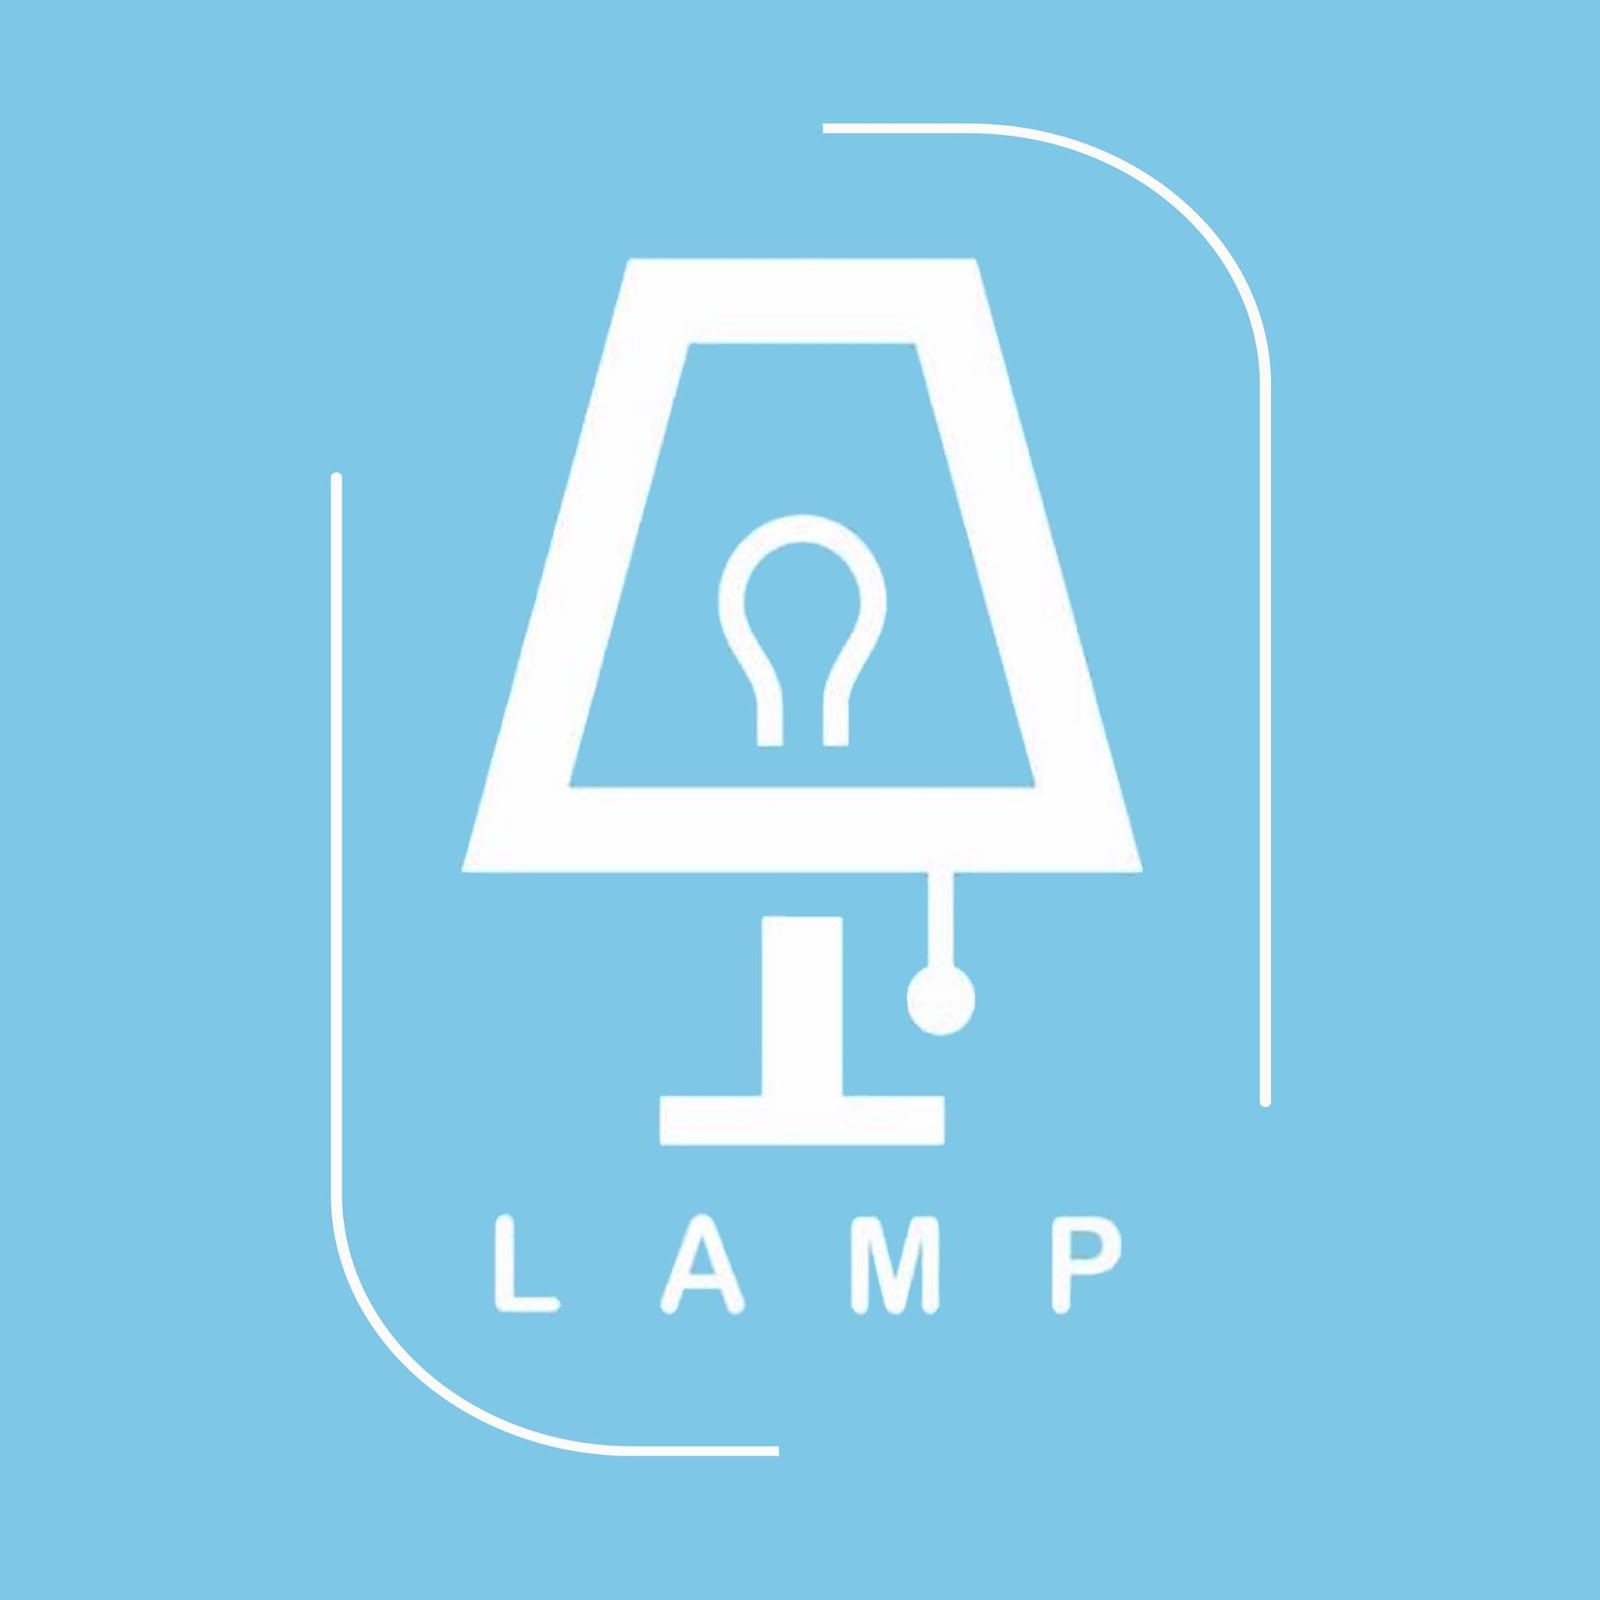 Click on the logo to learn more about LAMP!